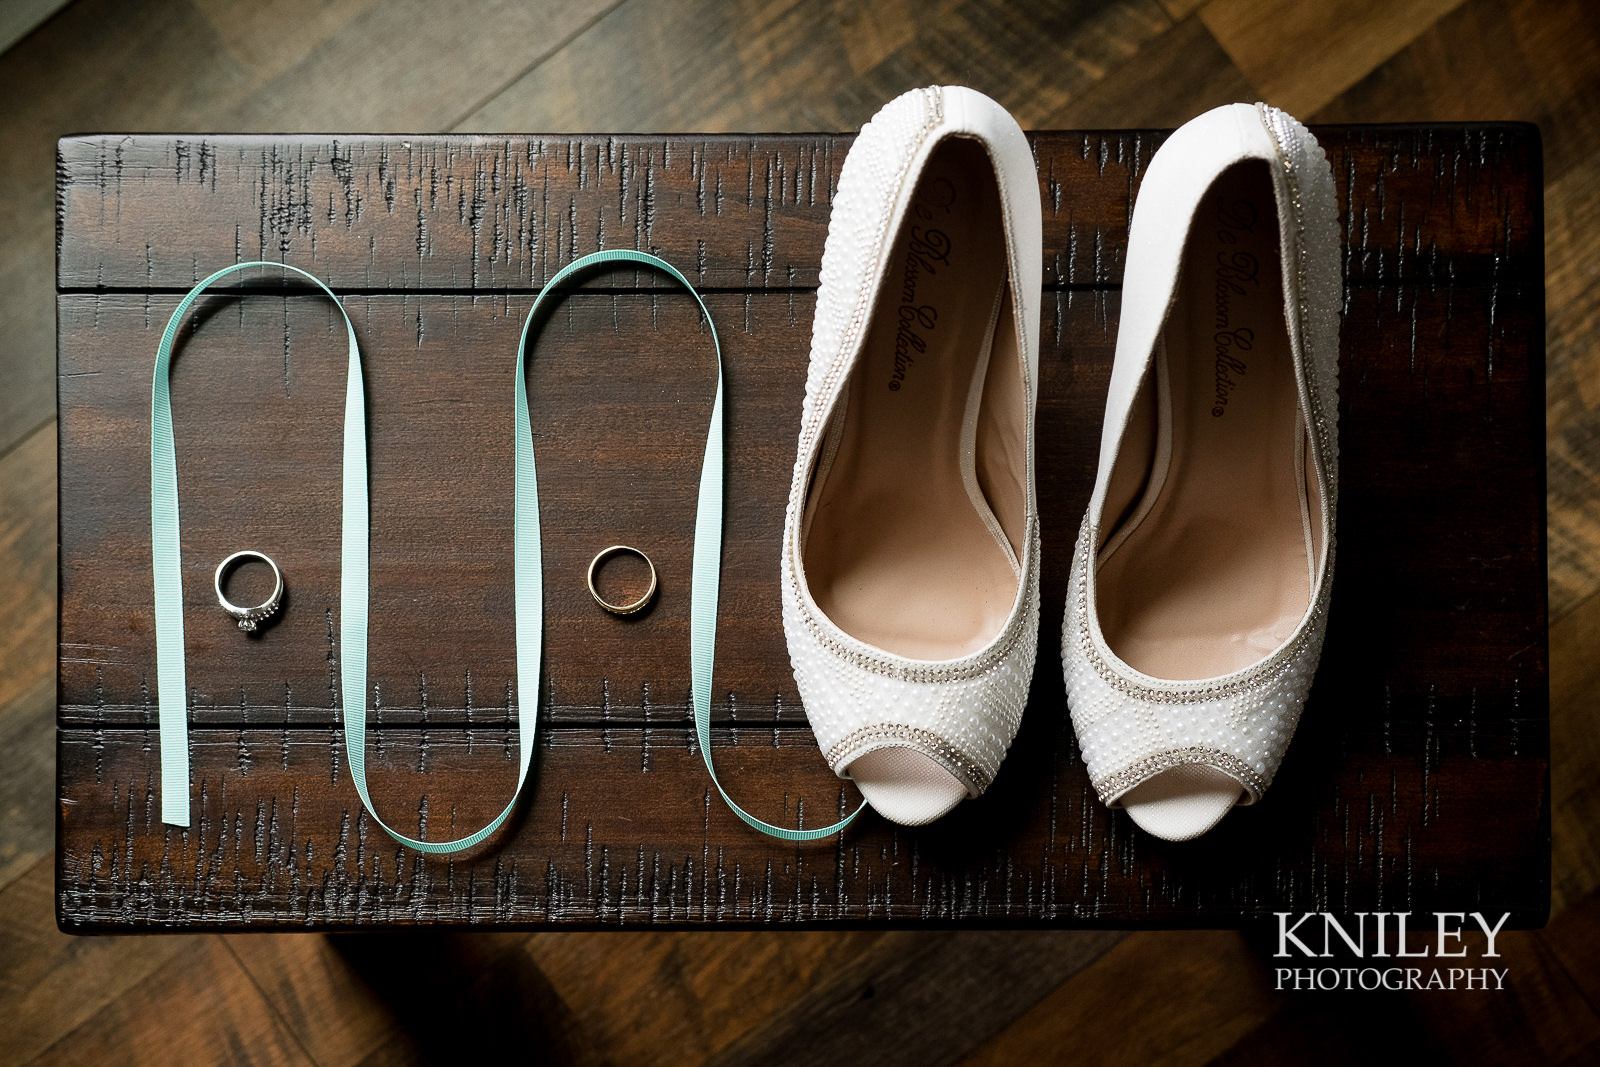 015 - Webster NY Wedding Prep Picture - XT2A2690.jpg